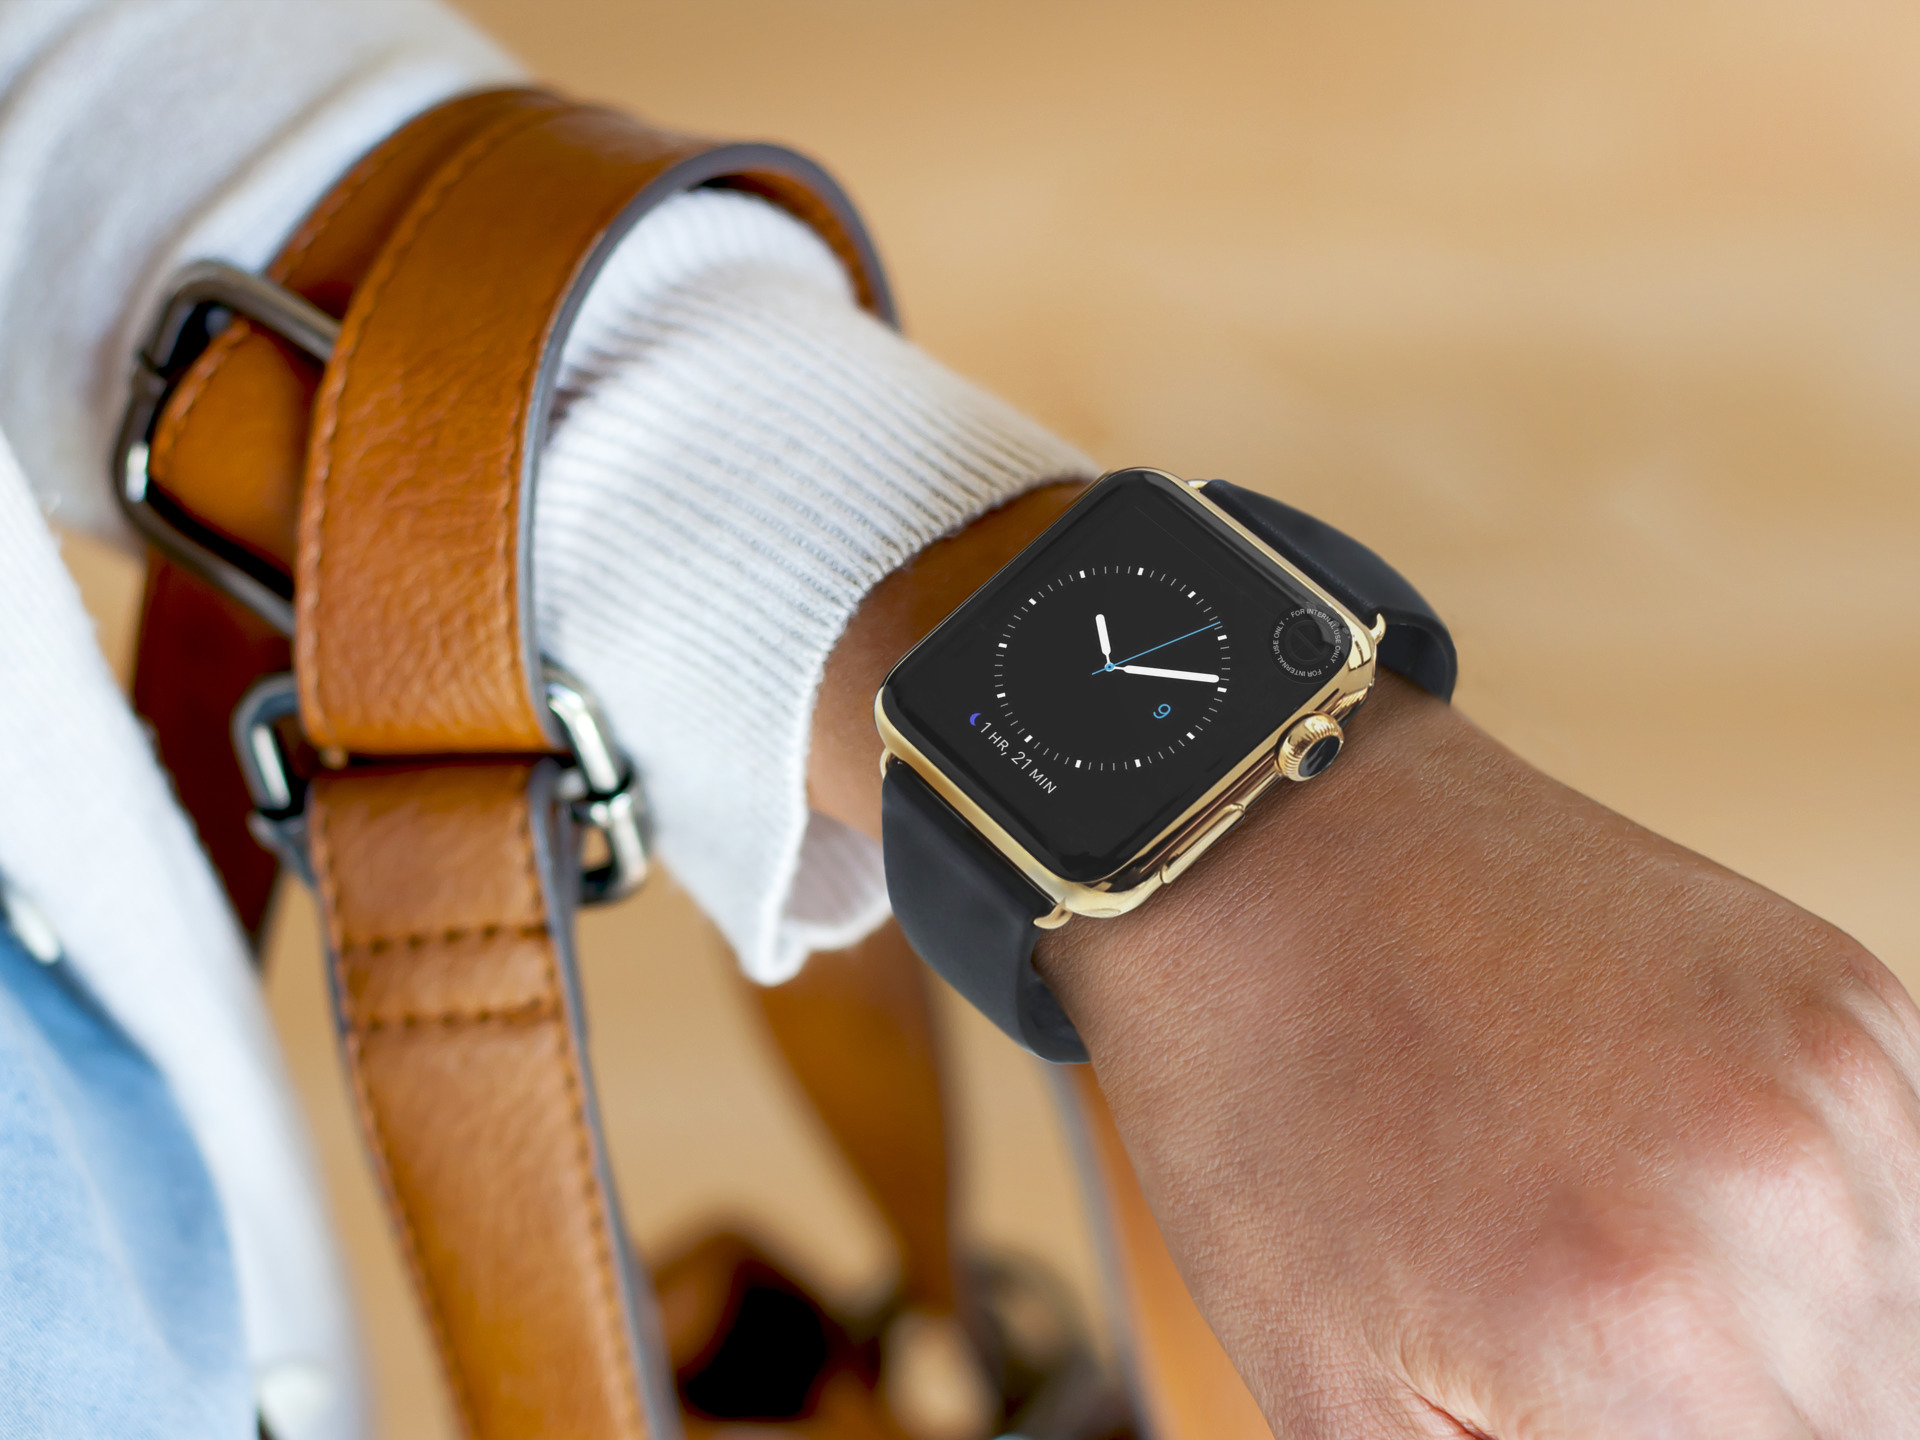 Here's a running list of third-party complications for your Apple Watch